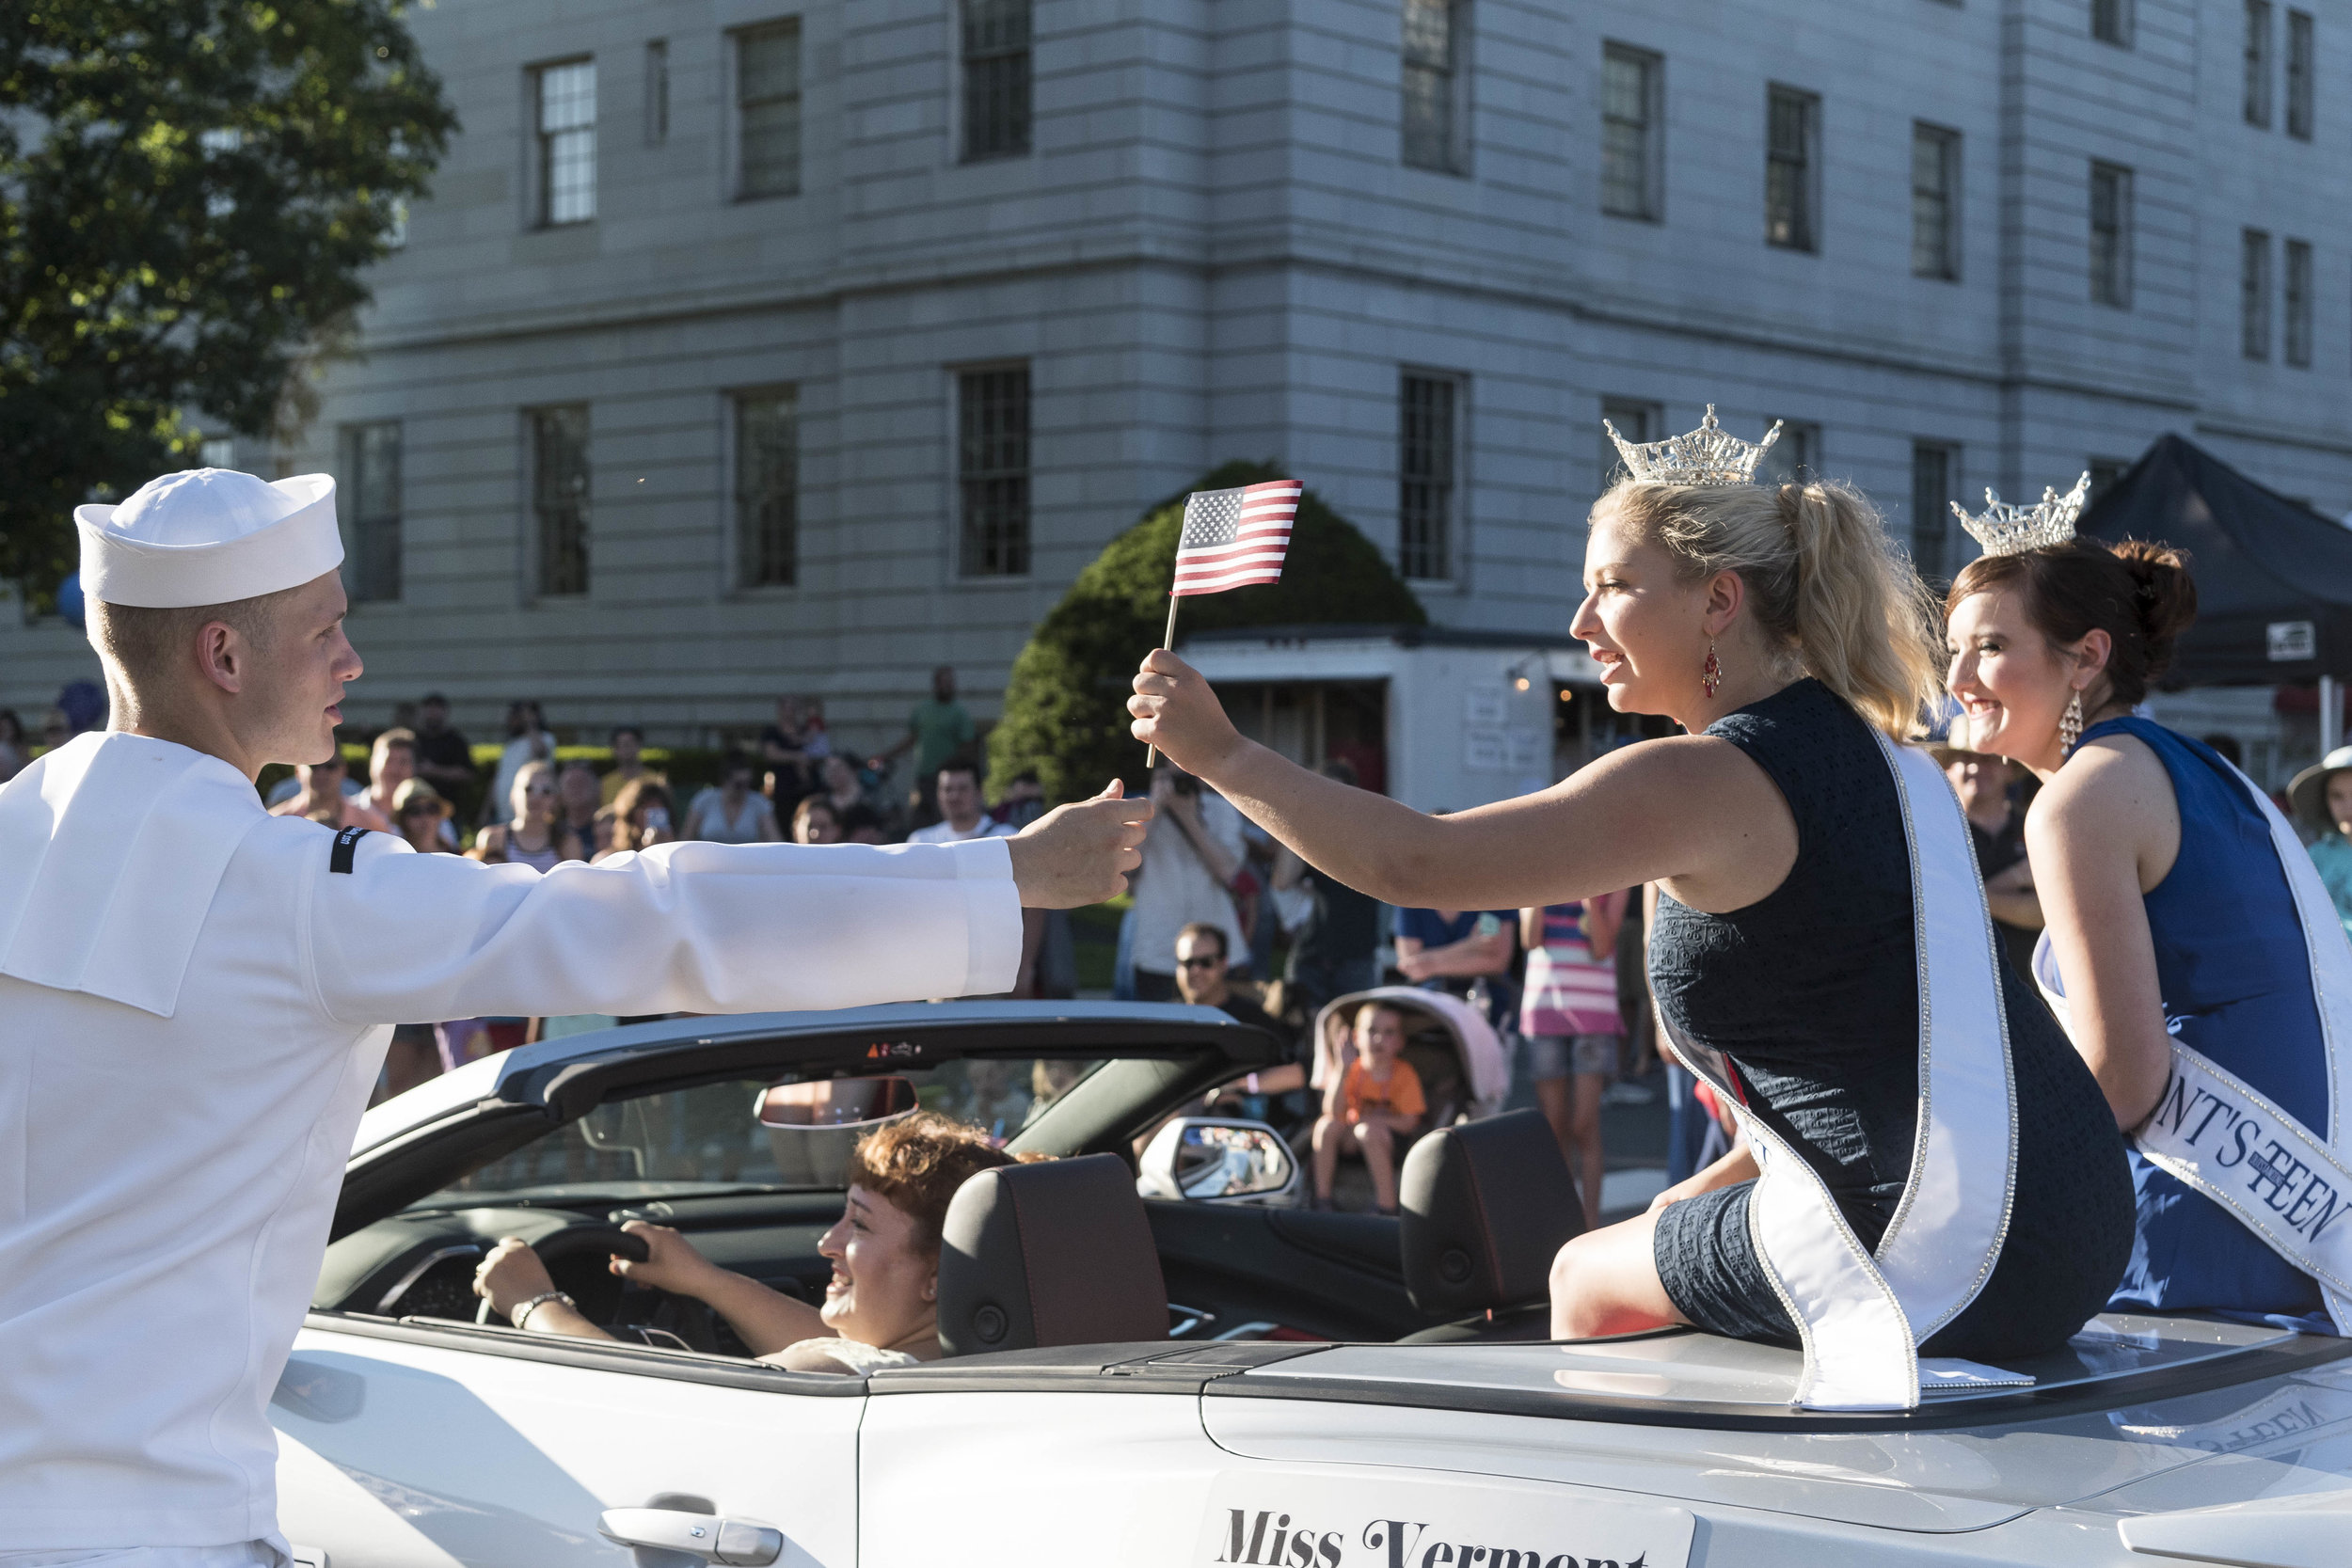 U.S.S. Montpelier sailor JD Smith (left) hands a miniature American flag to Miss Vermont, Julia Crane, during the Independence Day Parade in Montpelier on July 3rd, 2018.